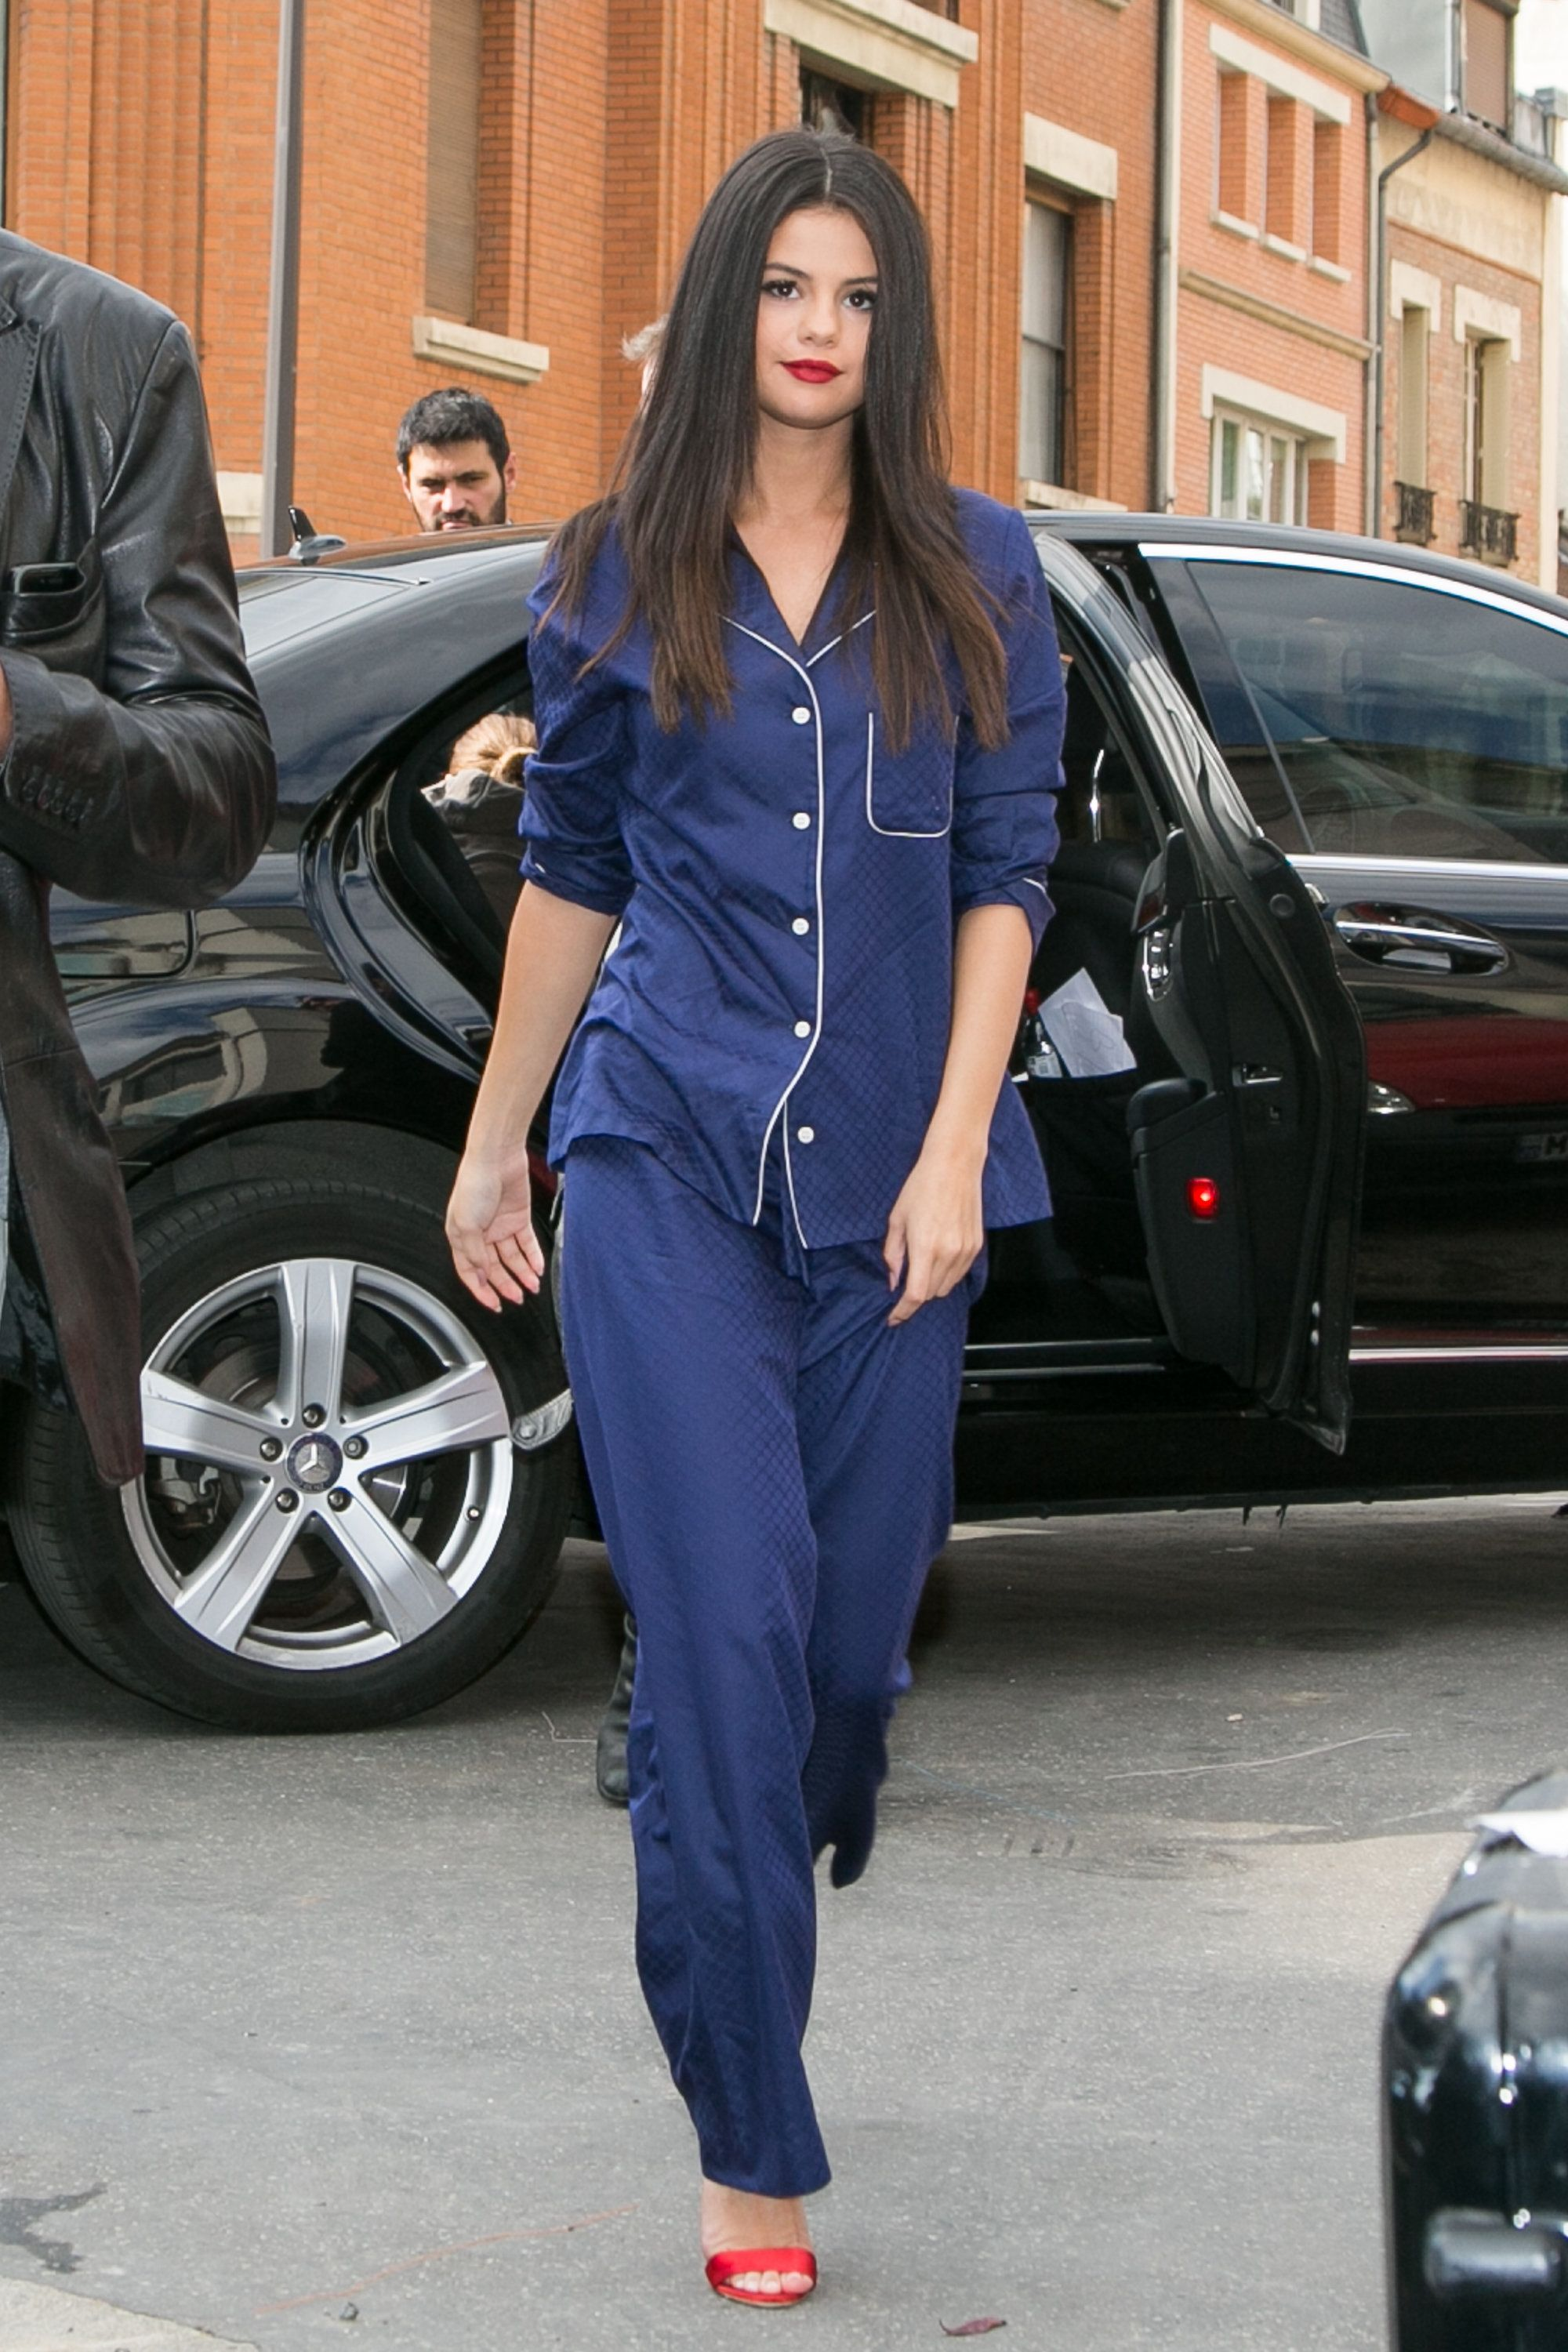 Selena Gomez arrives at a recording studio on Sep. 26, 2015 in Paris, France.